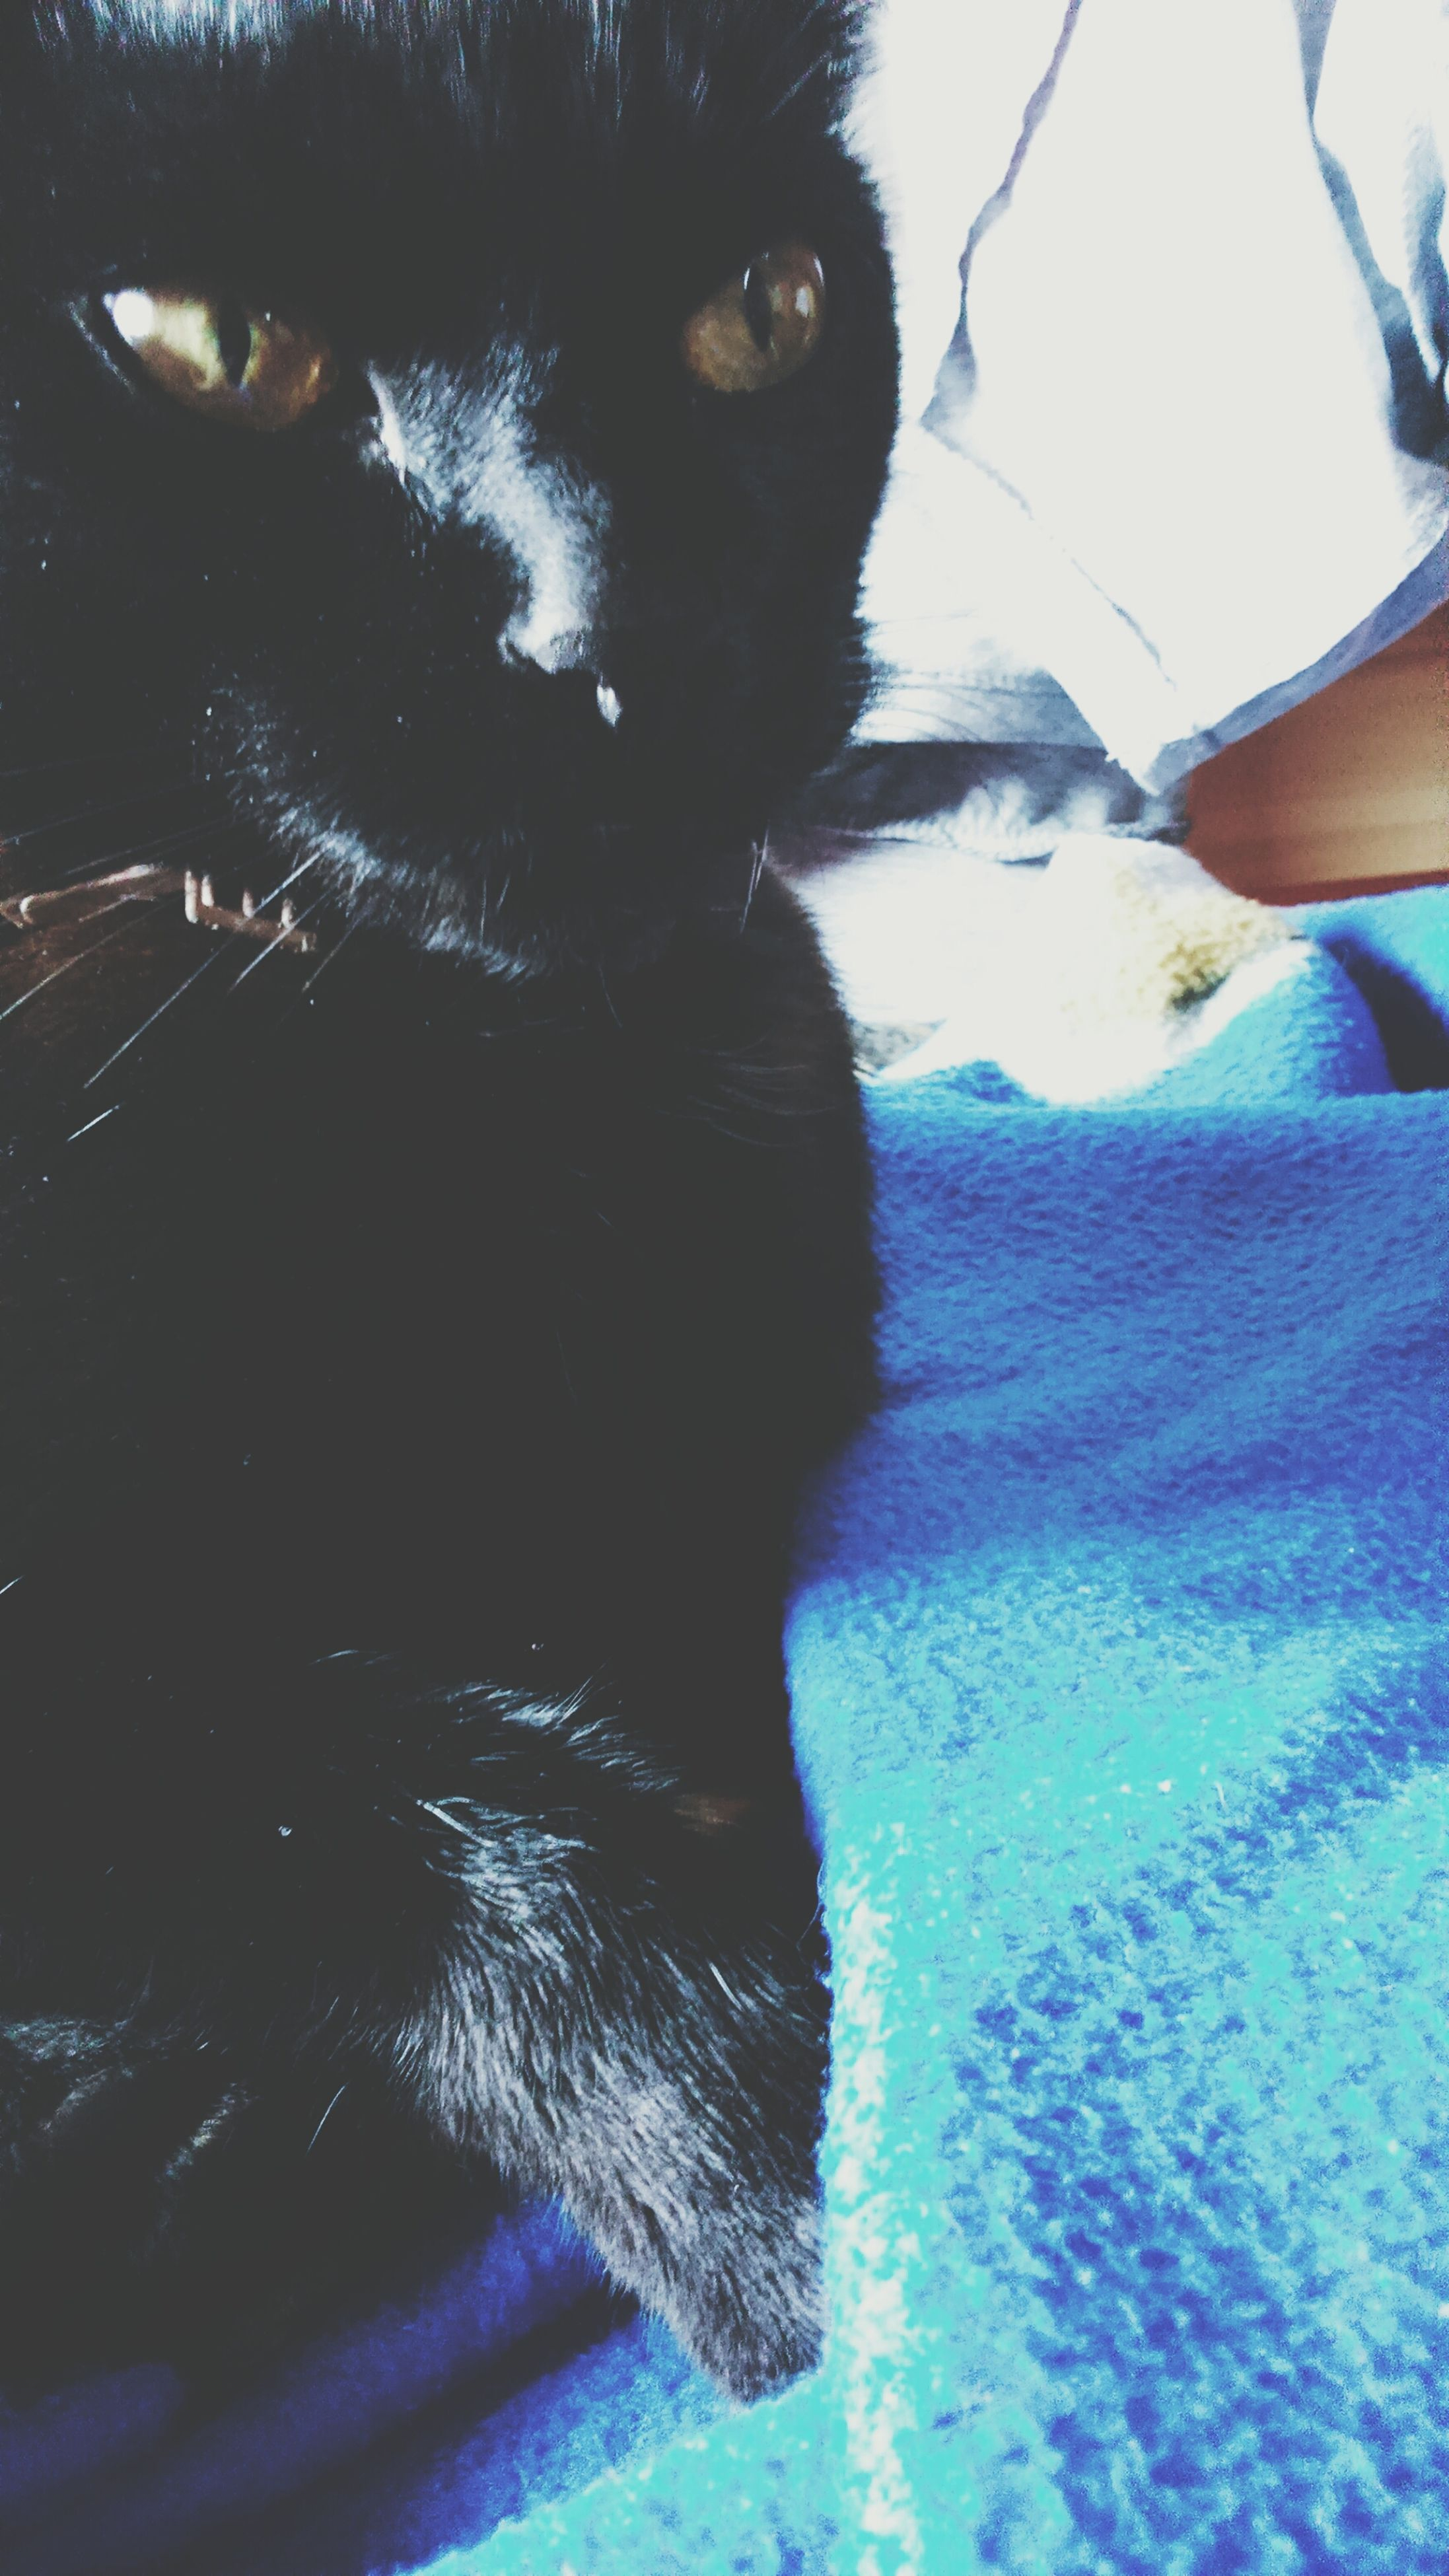 domestic animals, pets, one animal, animal themes, mammal, dog, animal head, black color, looking at camera, portrait, close-up, animal body part, indoors, domestic cat, relaxation, high angle view, cat, no people, lying down, whisker